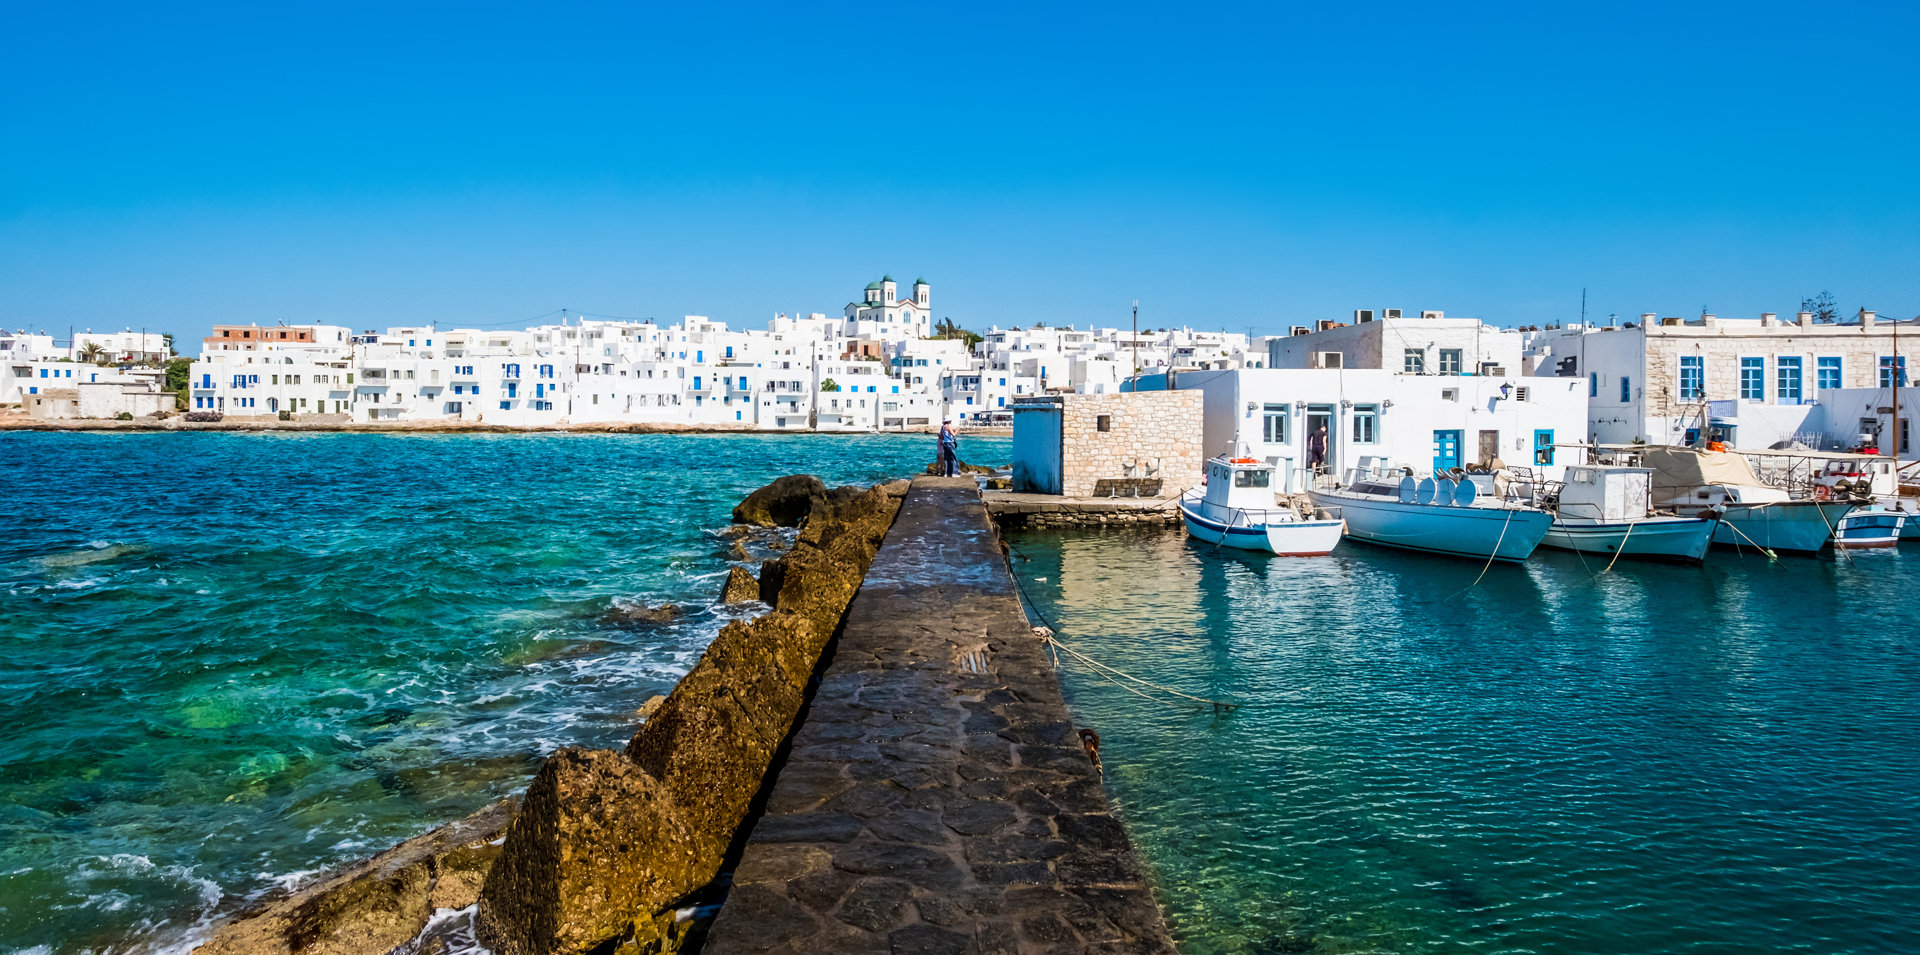 View of the traditional white houses on the promenade of Naoussa Paros, from the harbor on a sunny day